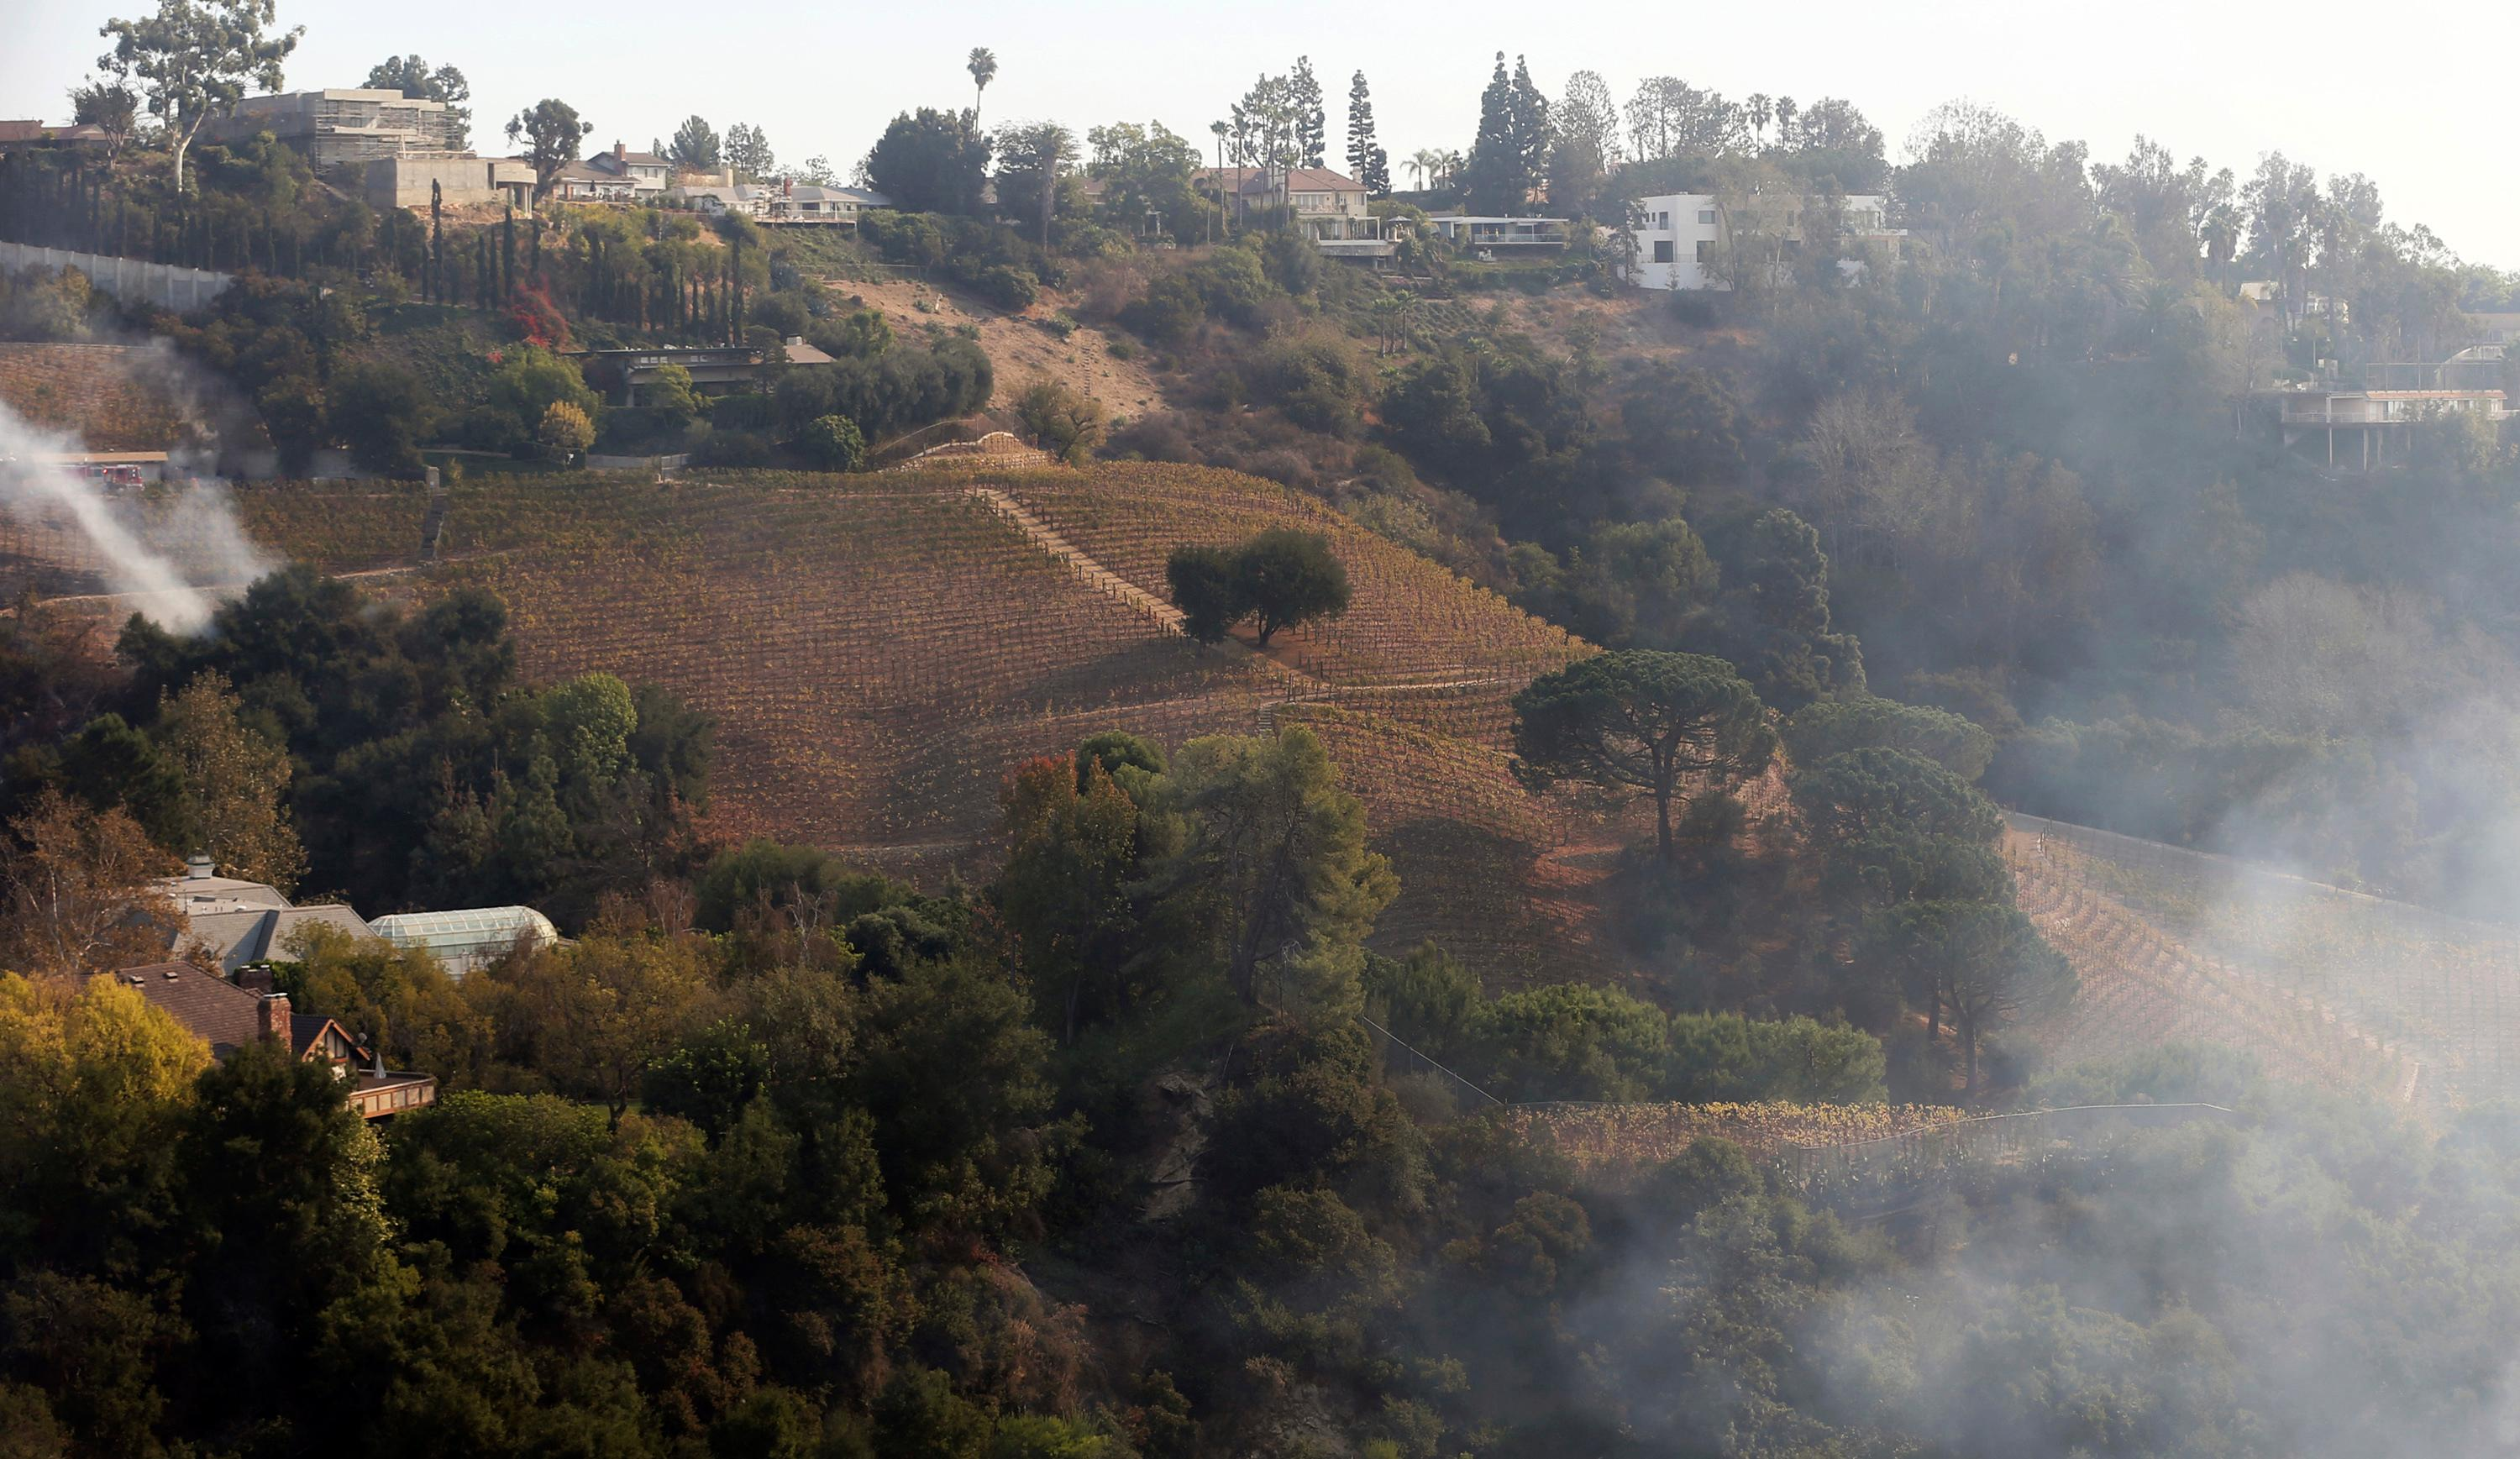 In this Dec. 6, 2017 photo, wildfire burns a portion of media mogul Rupert Murdoch's 16-acre (6.5-hectare) Moraga Vineyards estate, where about 7 acres (2.8 hectares) of vines appeared to have been damaged, a spokeswoman said.  (AP Photo/Reed Saxon)